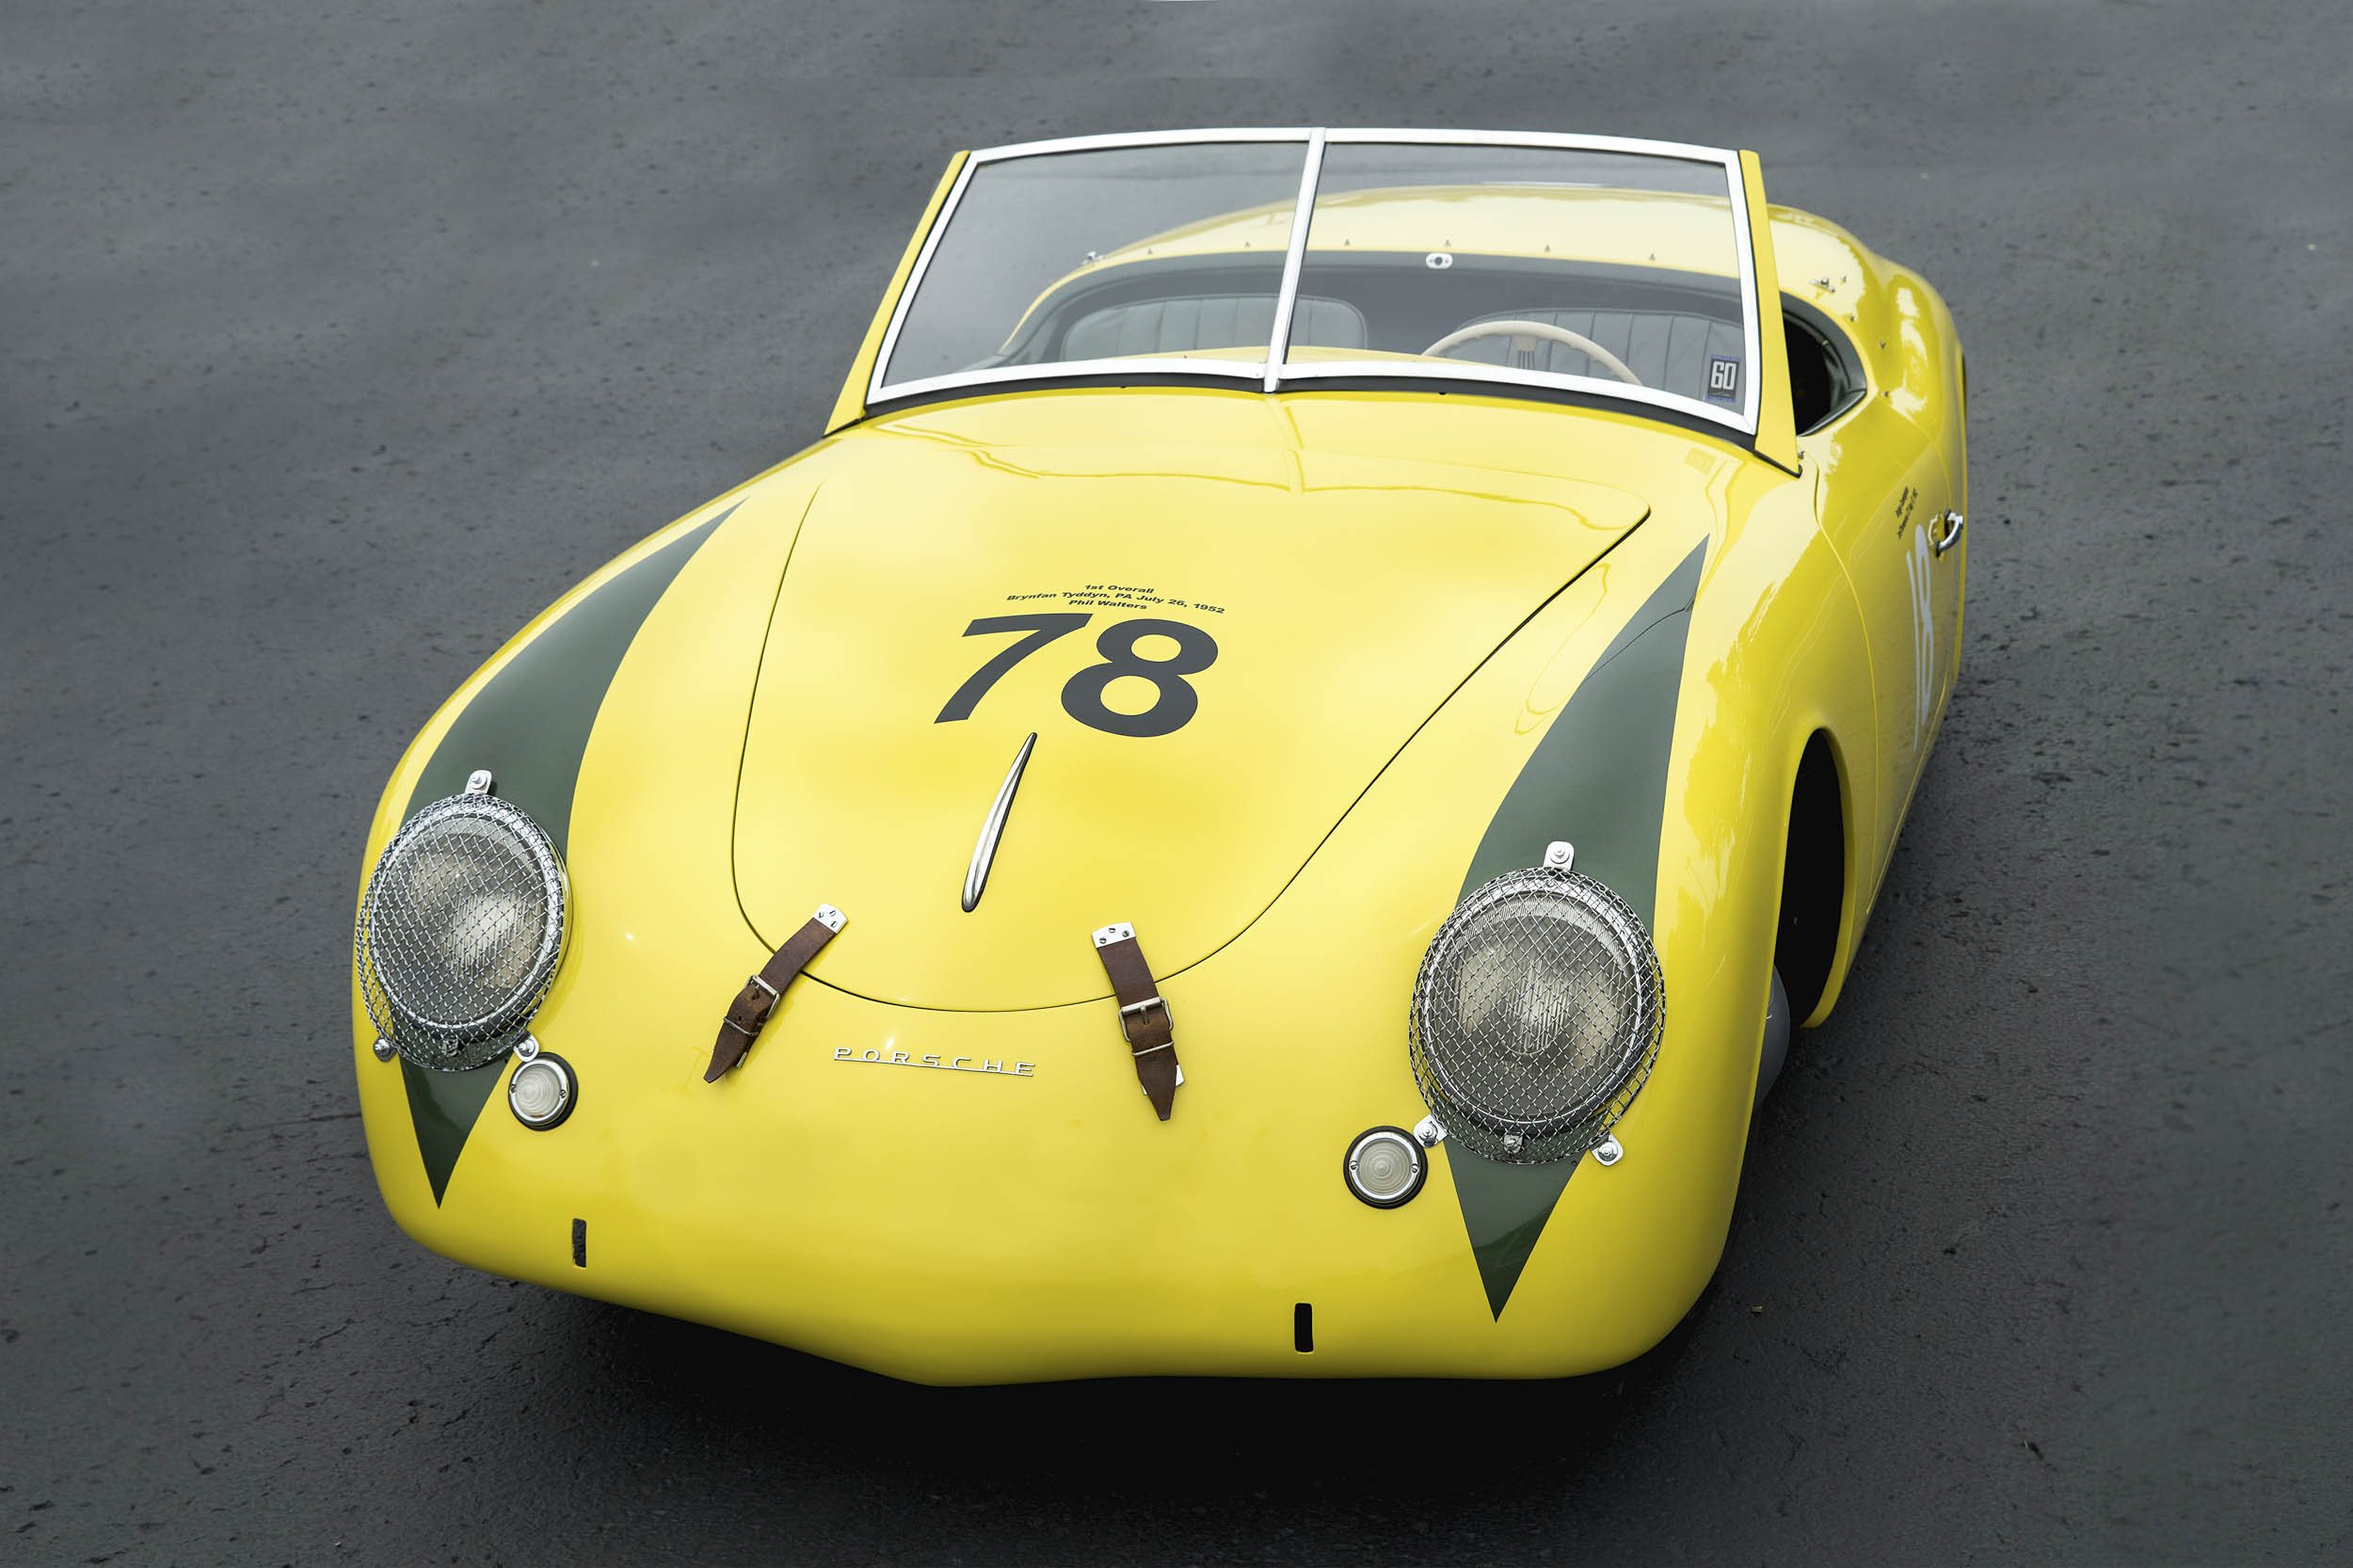 The Porsche's windshield can be replaced with a small plastic version for competition.